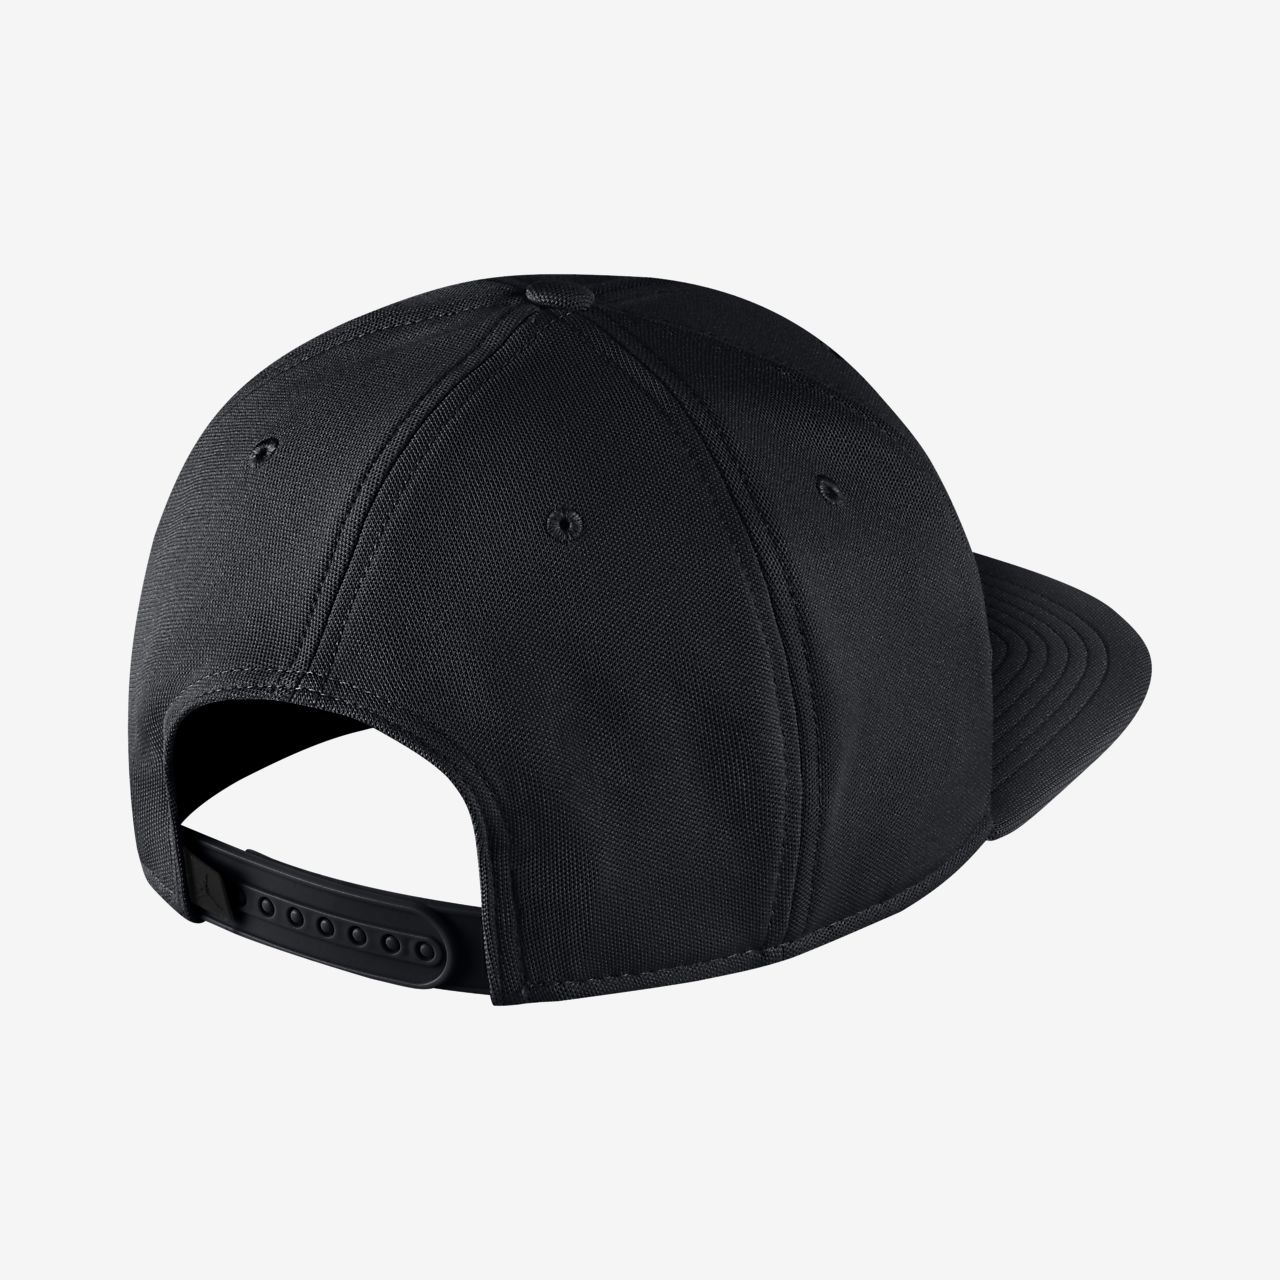 58fecf39eca9b Low Resolution Gorro ajustable Jordan Jumpman Snapback Gorro ajustable Jordan  Jumpman Snapback